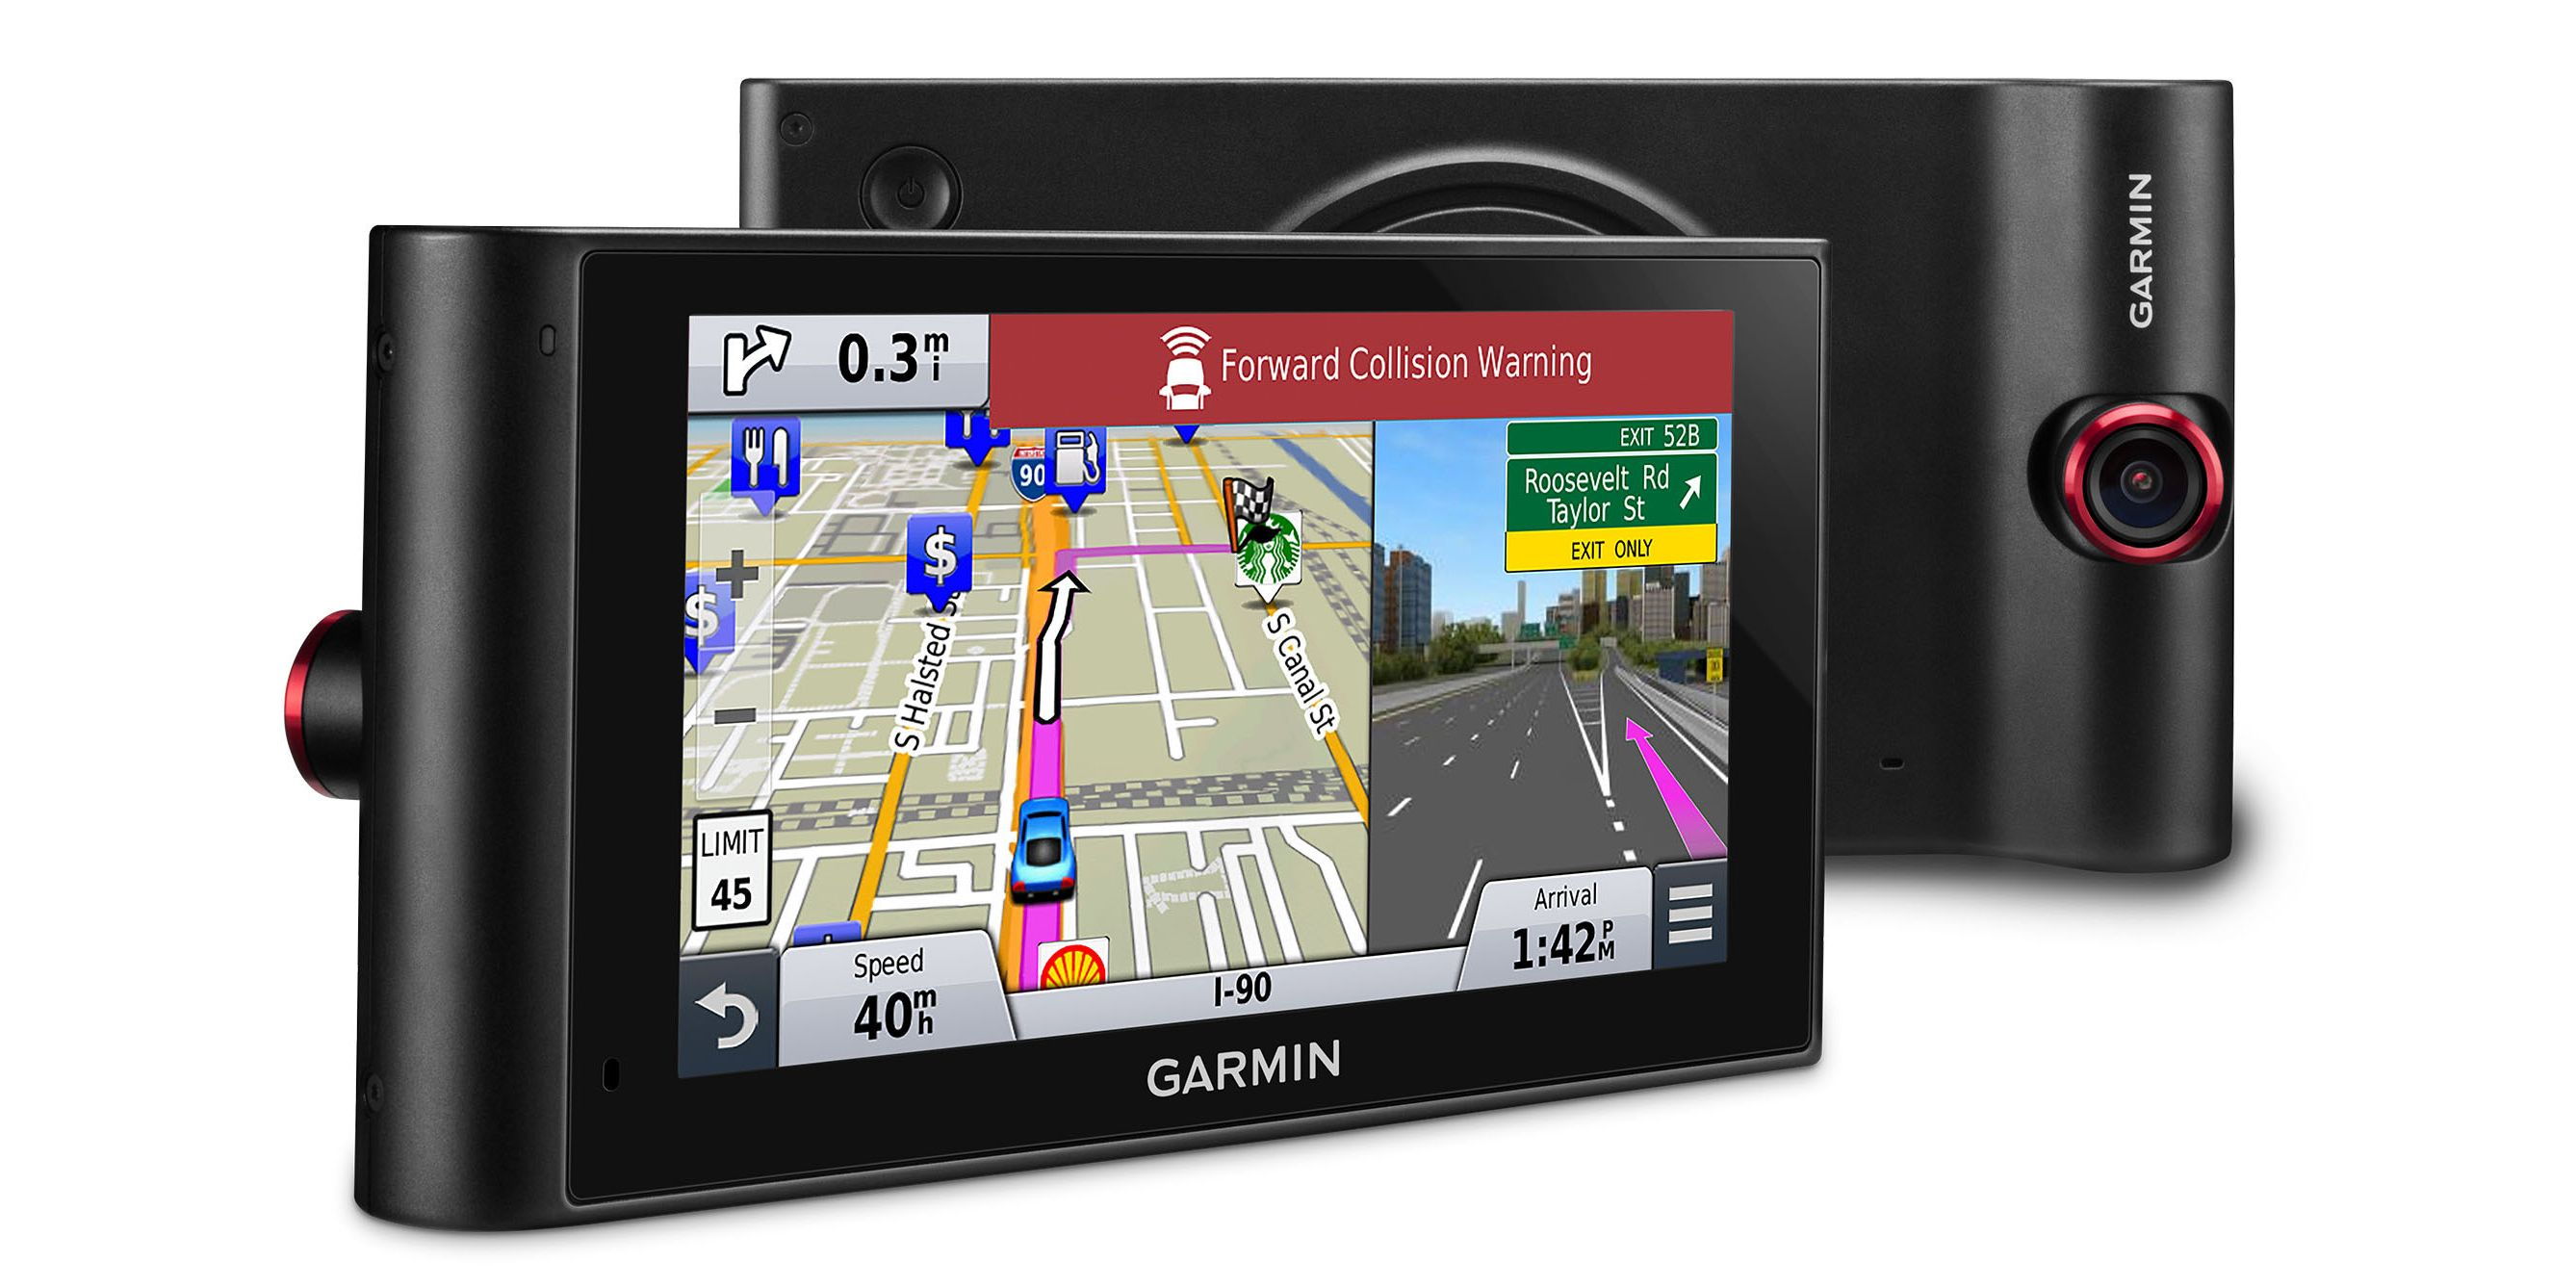 Garmin puts GPS, dashcam, and smart safety into one device